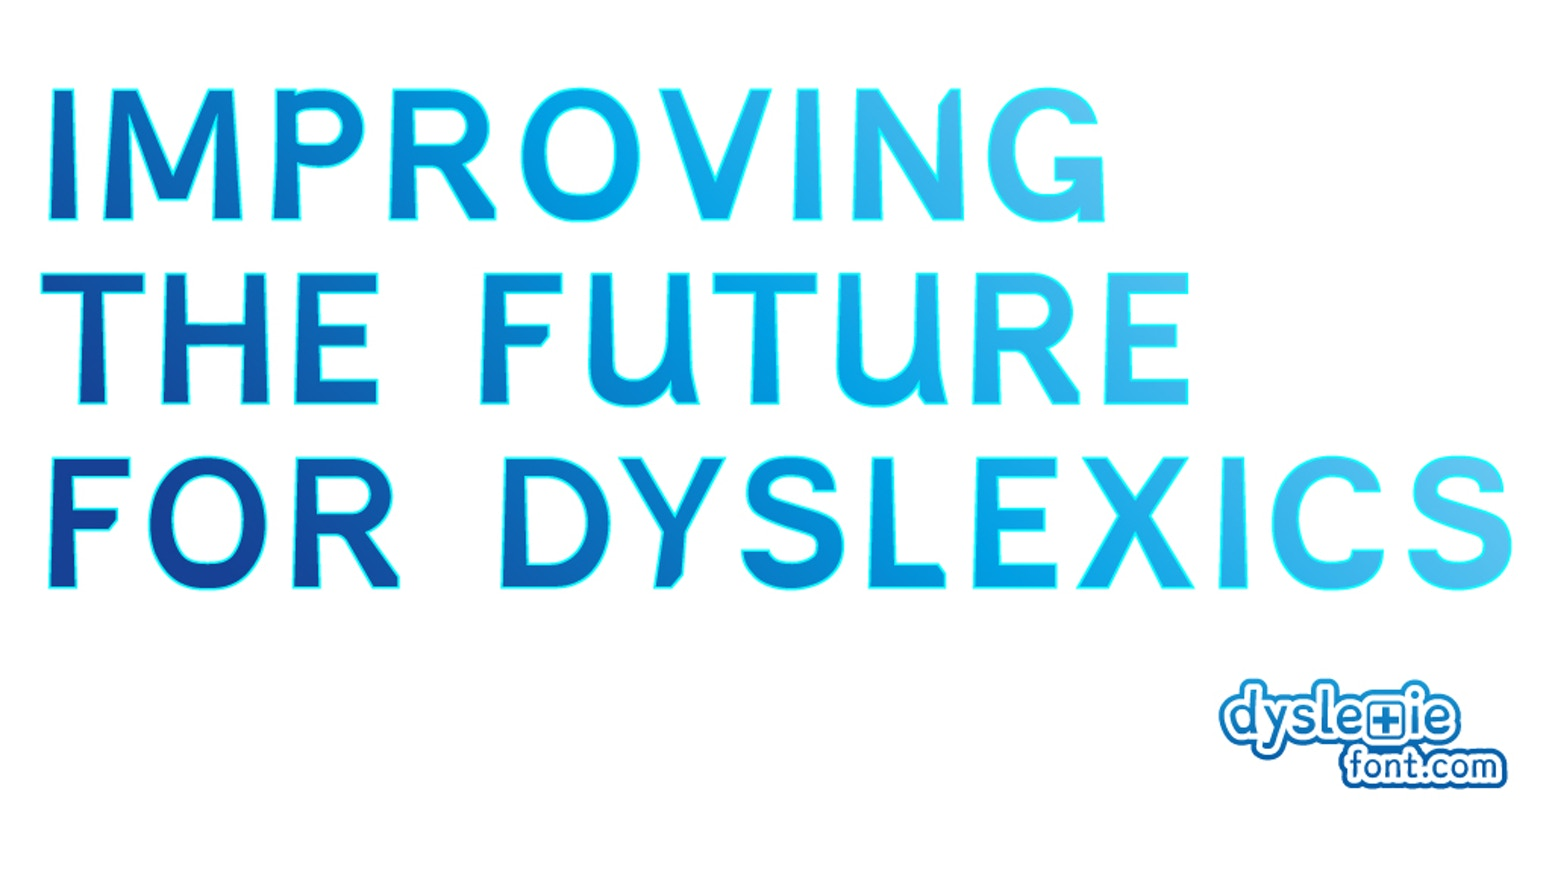 Dyslexie Font: Improving Reading for Dyslexics by Dyslexie